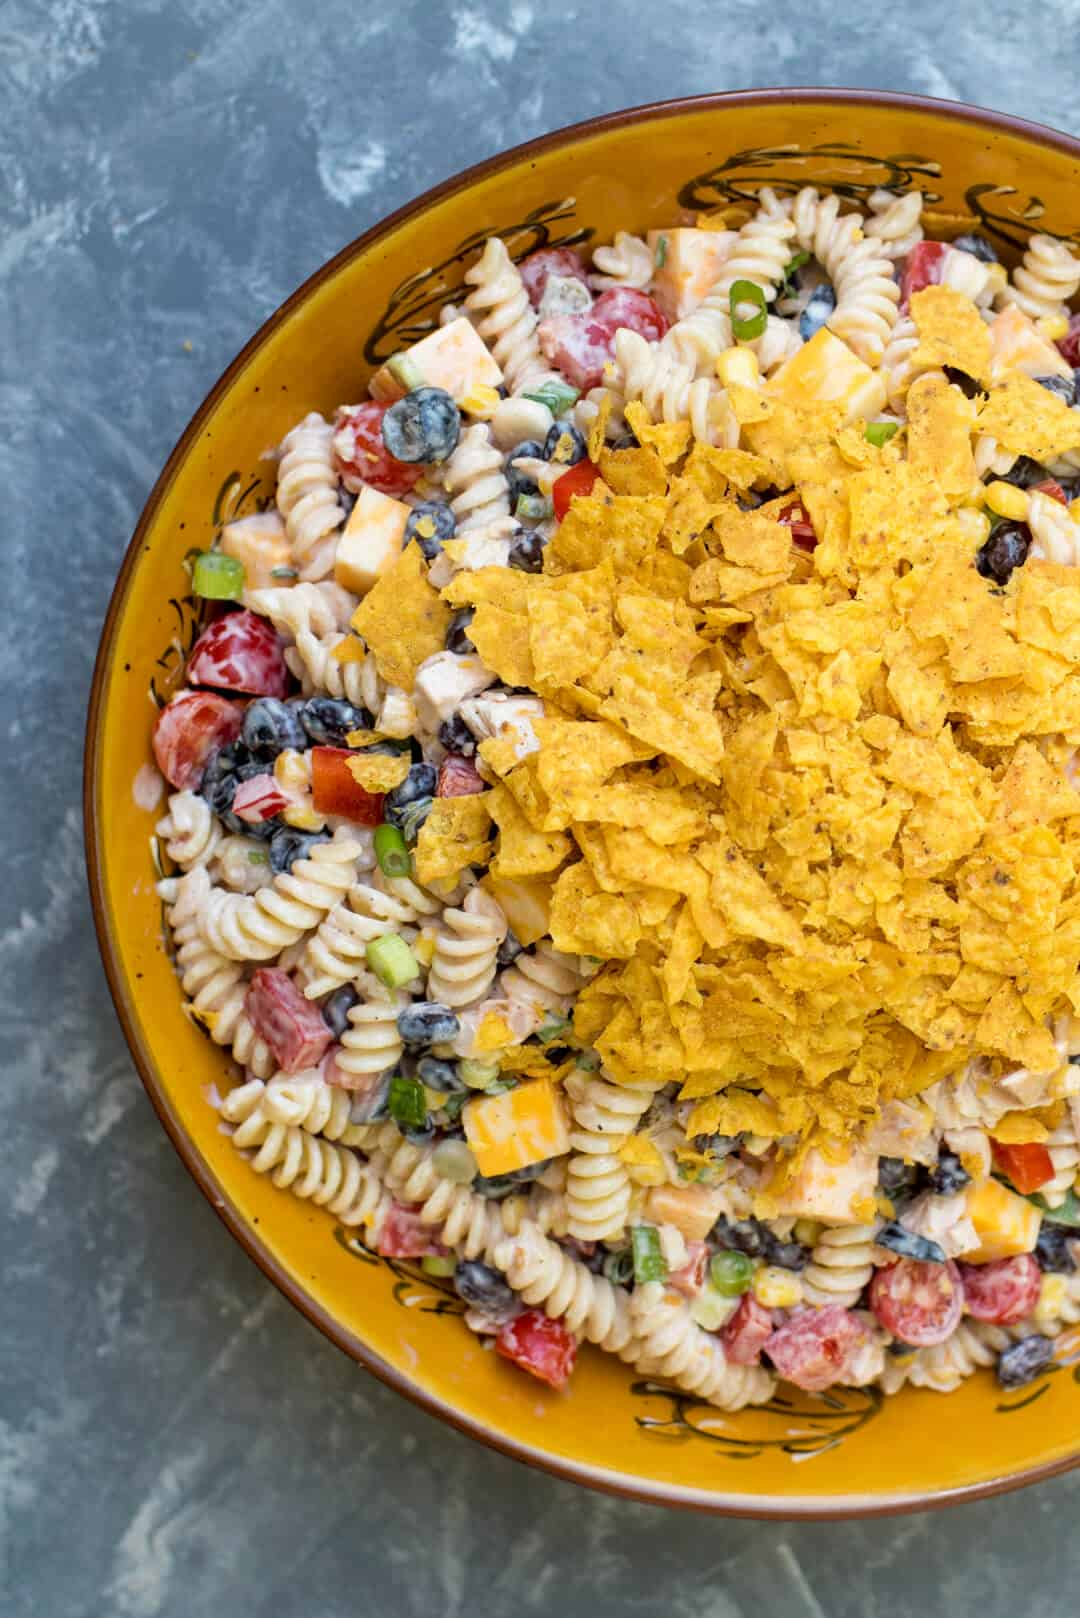 This Southwest Ranch Chicken Pasta Salad is loaded with vibrant, flavorful ingredients, tossed with a creamy salsa Ranch dressing and topped off with crushed Doritos®. A fun choice to make and take to any summer gathering.